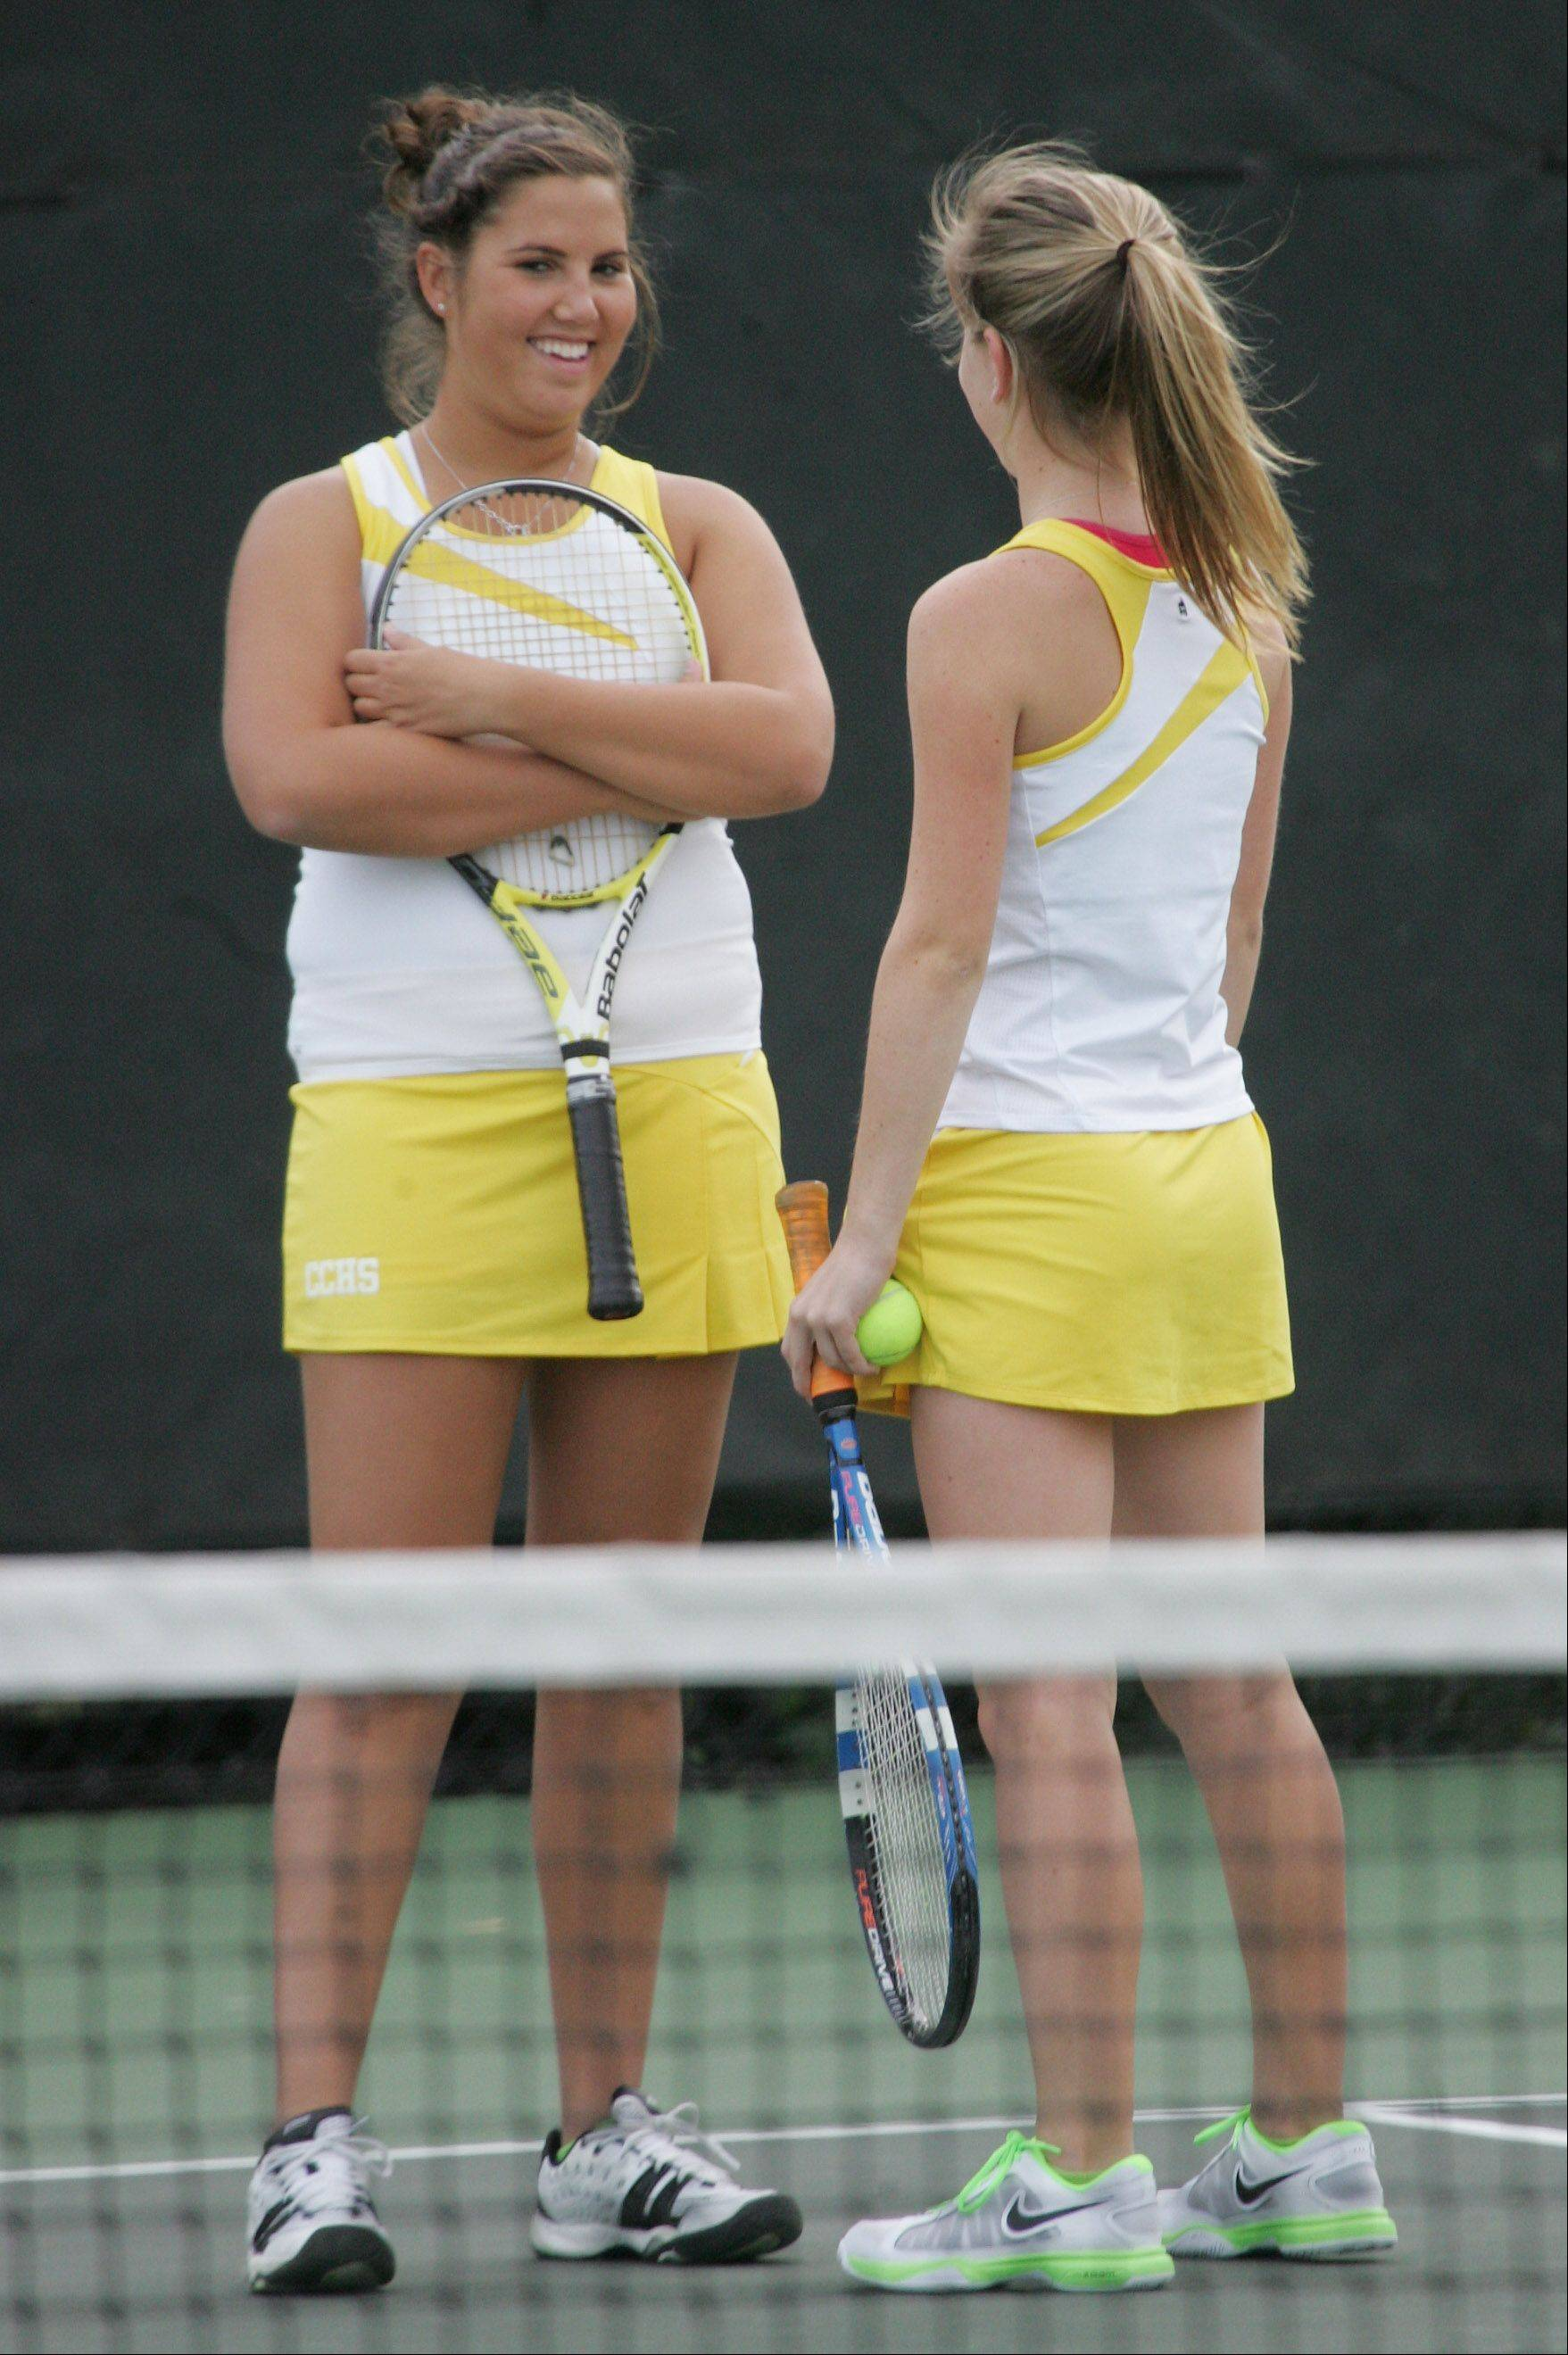 Carmel doubles players Maclain Edwards, left, and Emily Rhine talk during their match against Warren's Courtney Sunday and Mikayla Schultz on Monday in Mundelein.